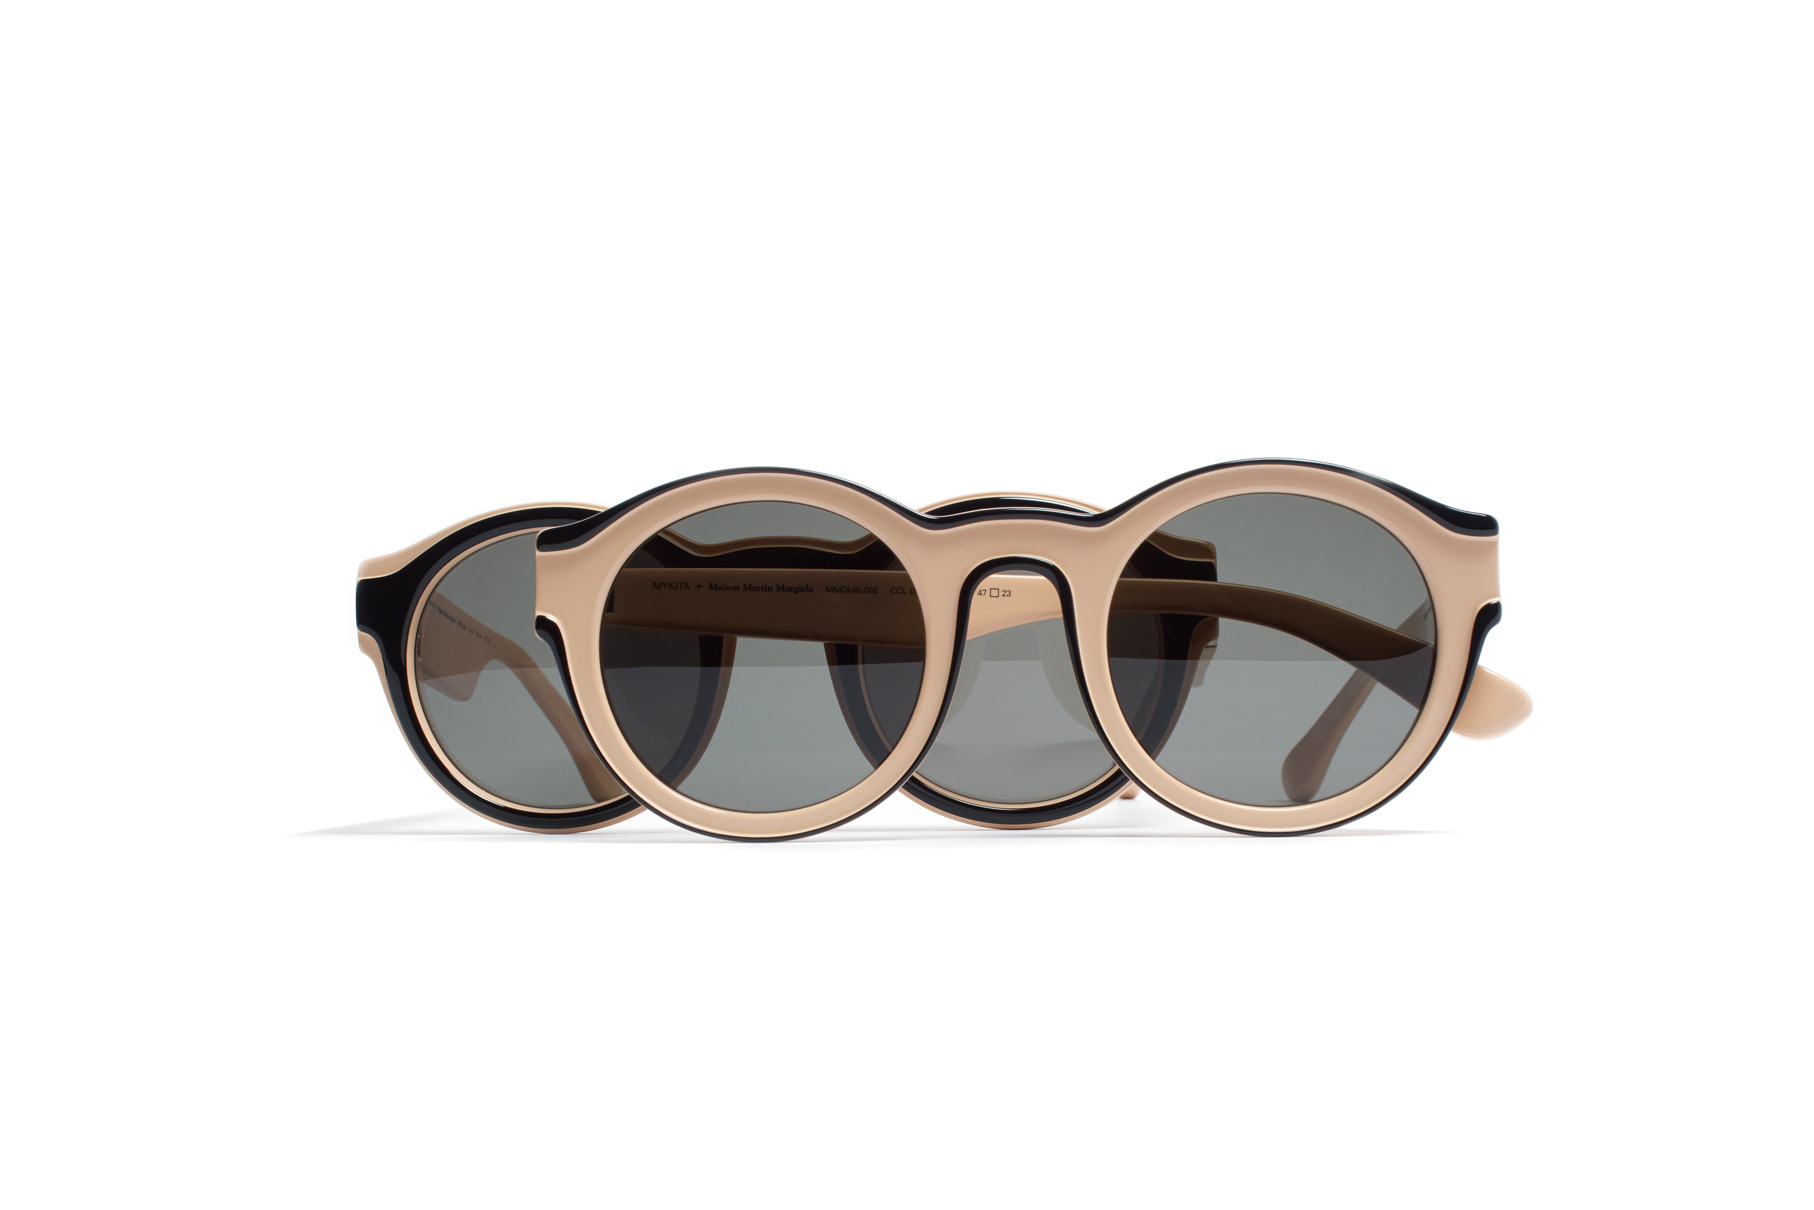 MYKITA Maison Martin Margiela Group Essential